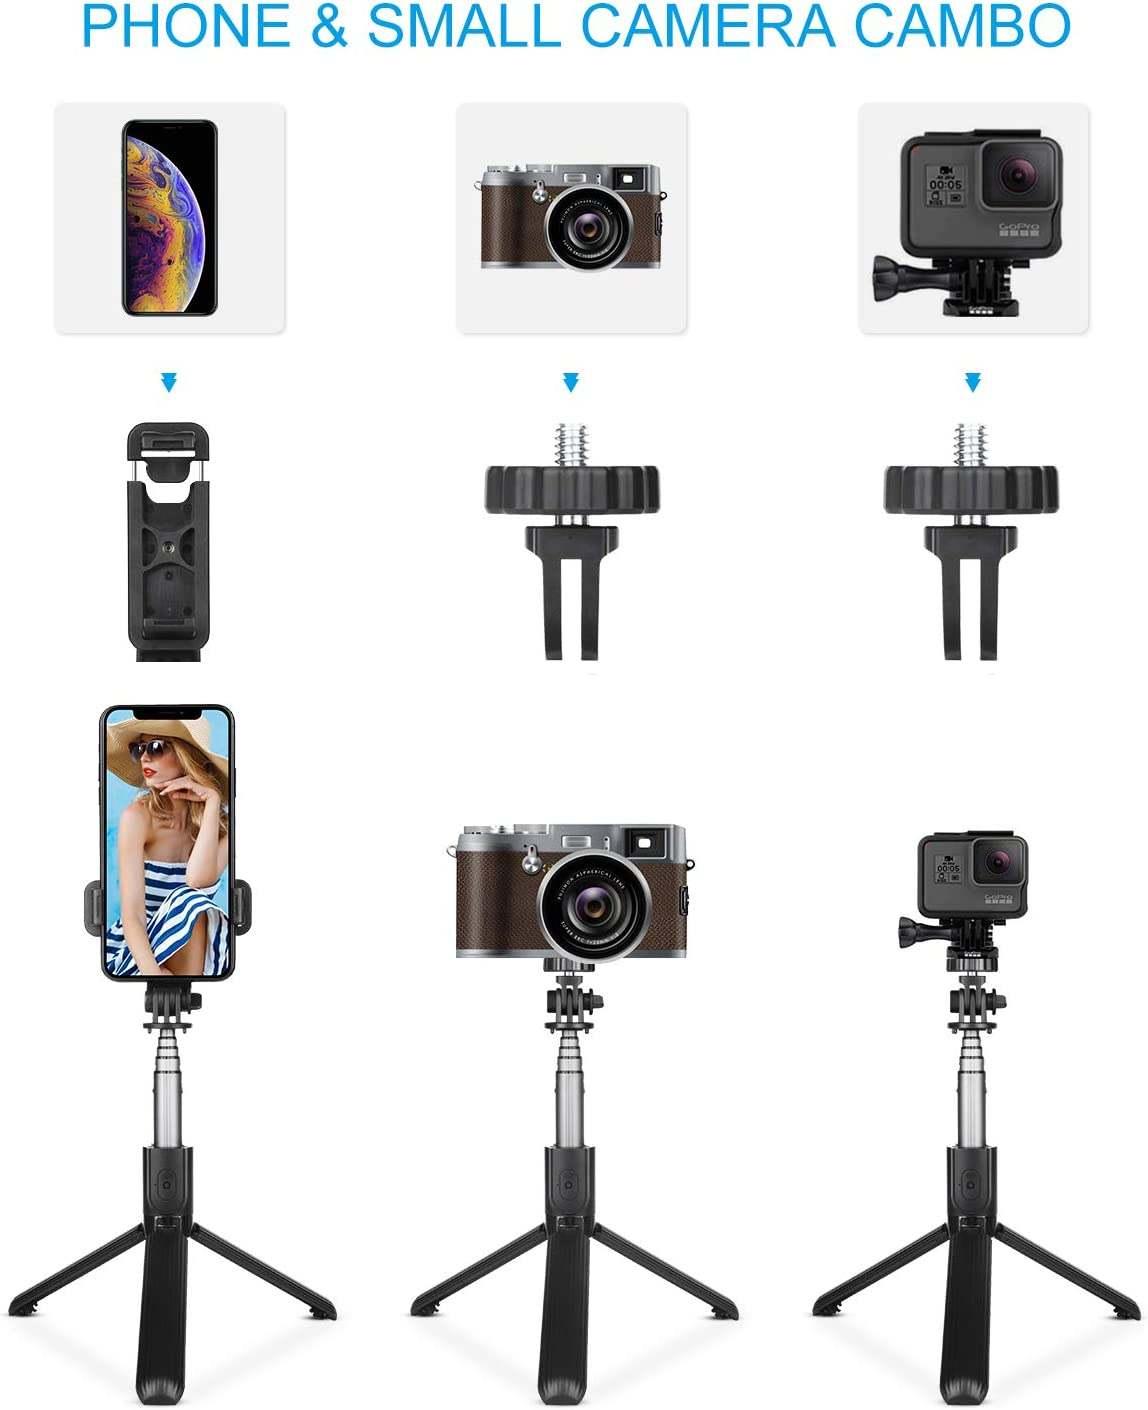 TVACHE Selfie Stick,Extendable Bluetooth Selfie Stick Tripod with Wireless Remote for iPhone 11// XS Max//XR//X//8//8 Plus//7//6s,Galaxy S10//S9//S8//S7,iOS Android Phone Holder,GoPro/&Small Camera Tripod Stand